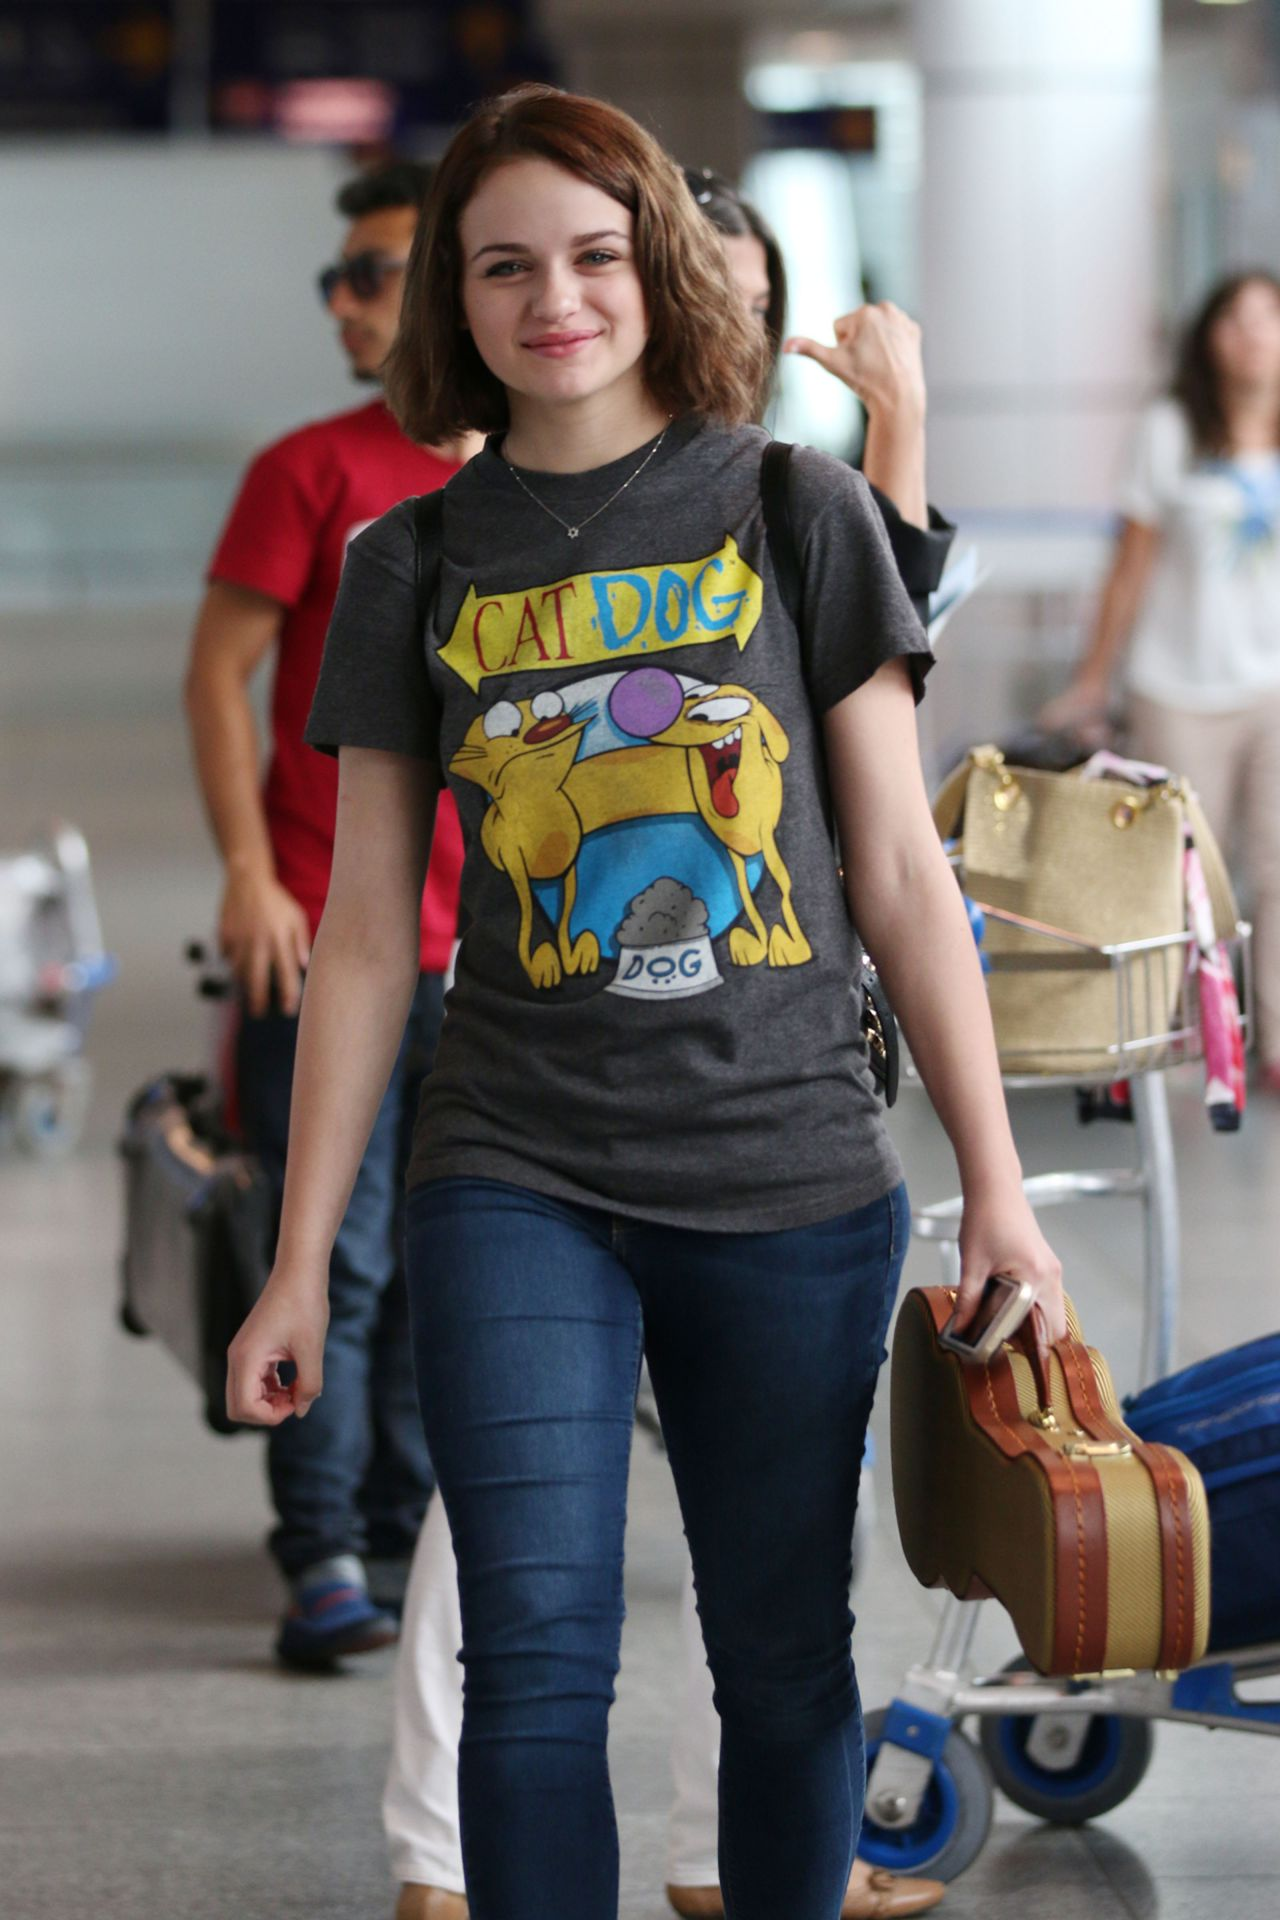 joey king fargojoey king fargo, joey king wikipedia, joey king boyfriend, joey king and dylan sprayberry, joey king films, joey king vk, joey king wiki, joey king hd photo, joey king fan, joey king reddit, joey king mother, joey king and channing tatum dance, joey king boyfriend 2016, joey king zodiac, joey king zimbio, joey king fan site, joey king instagram, joey king actress, joey king net worth, joey king wrestler